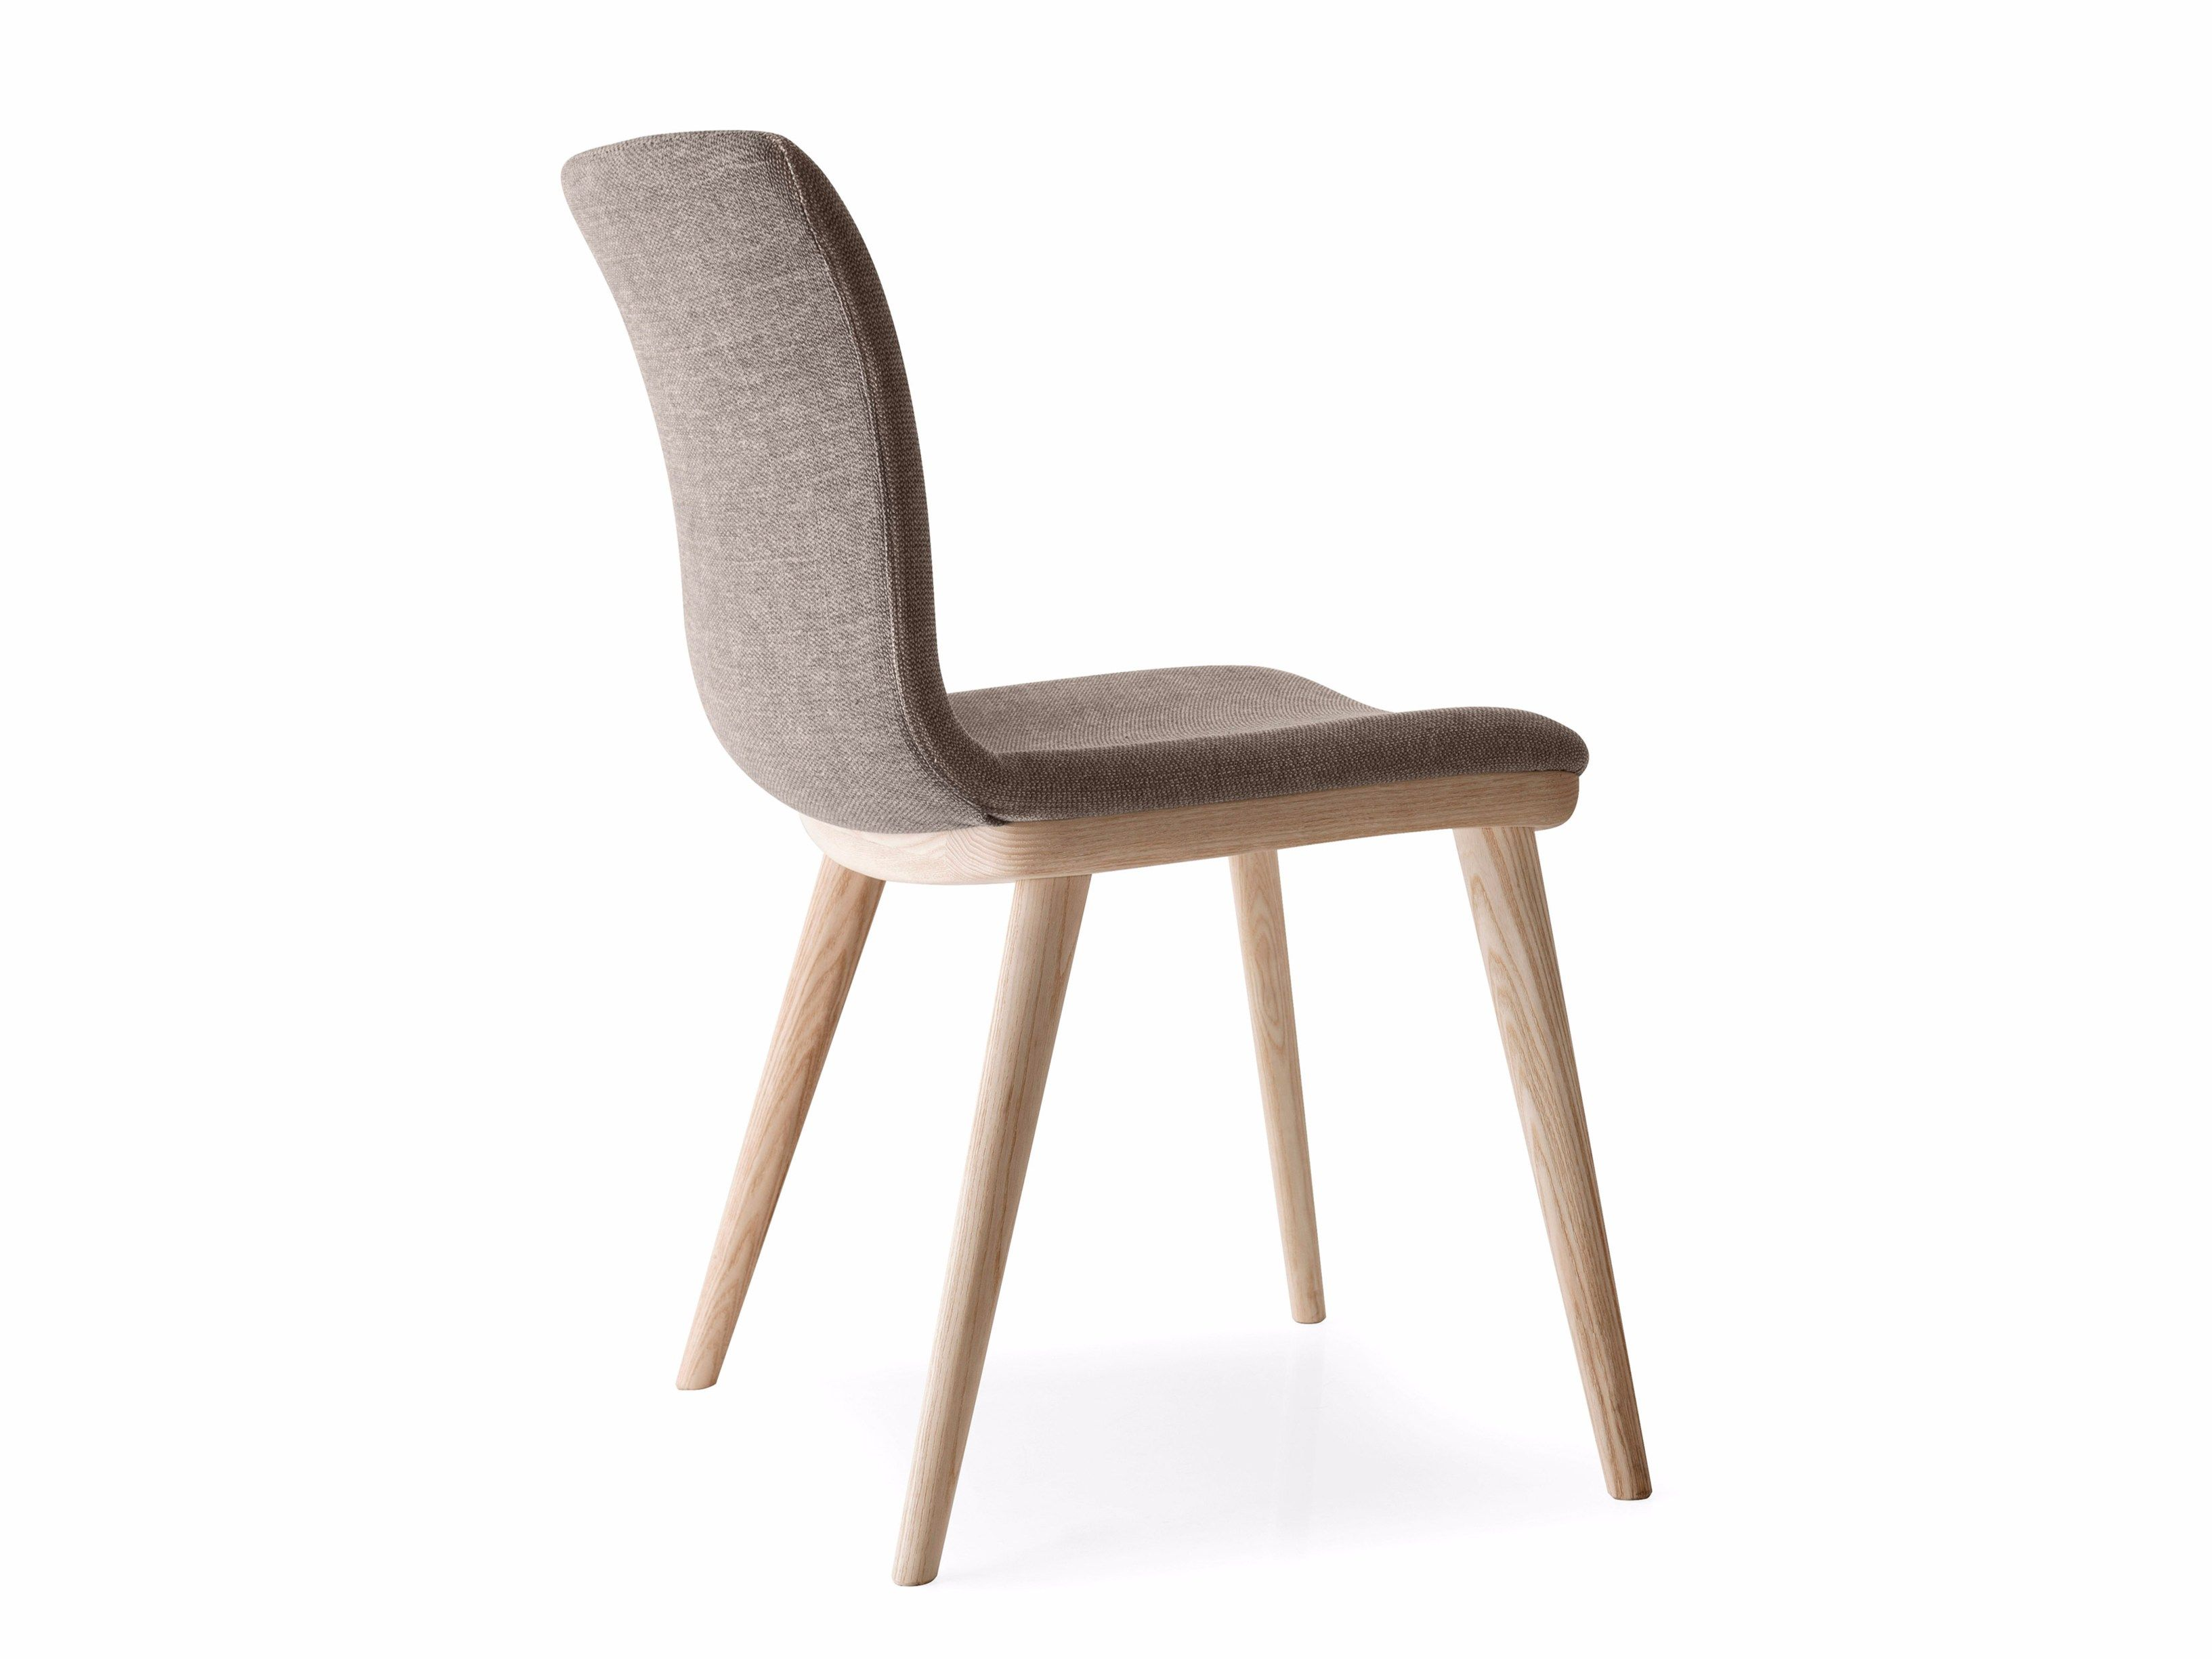 Upholstered fabric chair ANNIE by Calligaris design Edi e Paolo